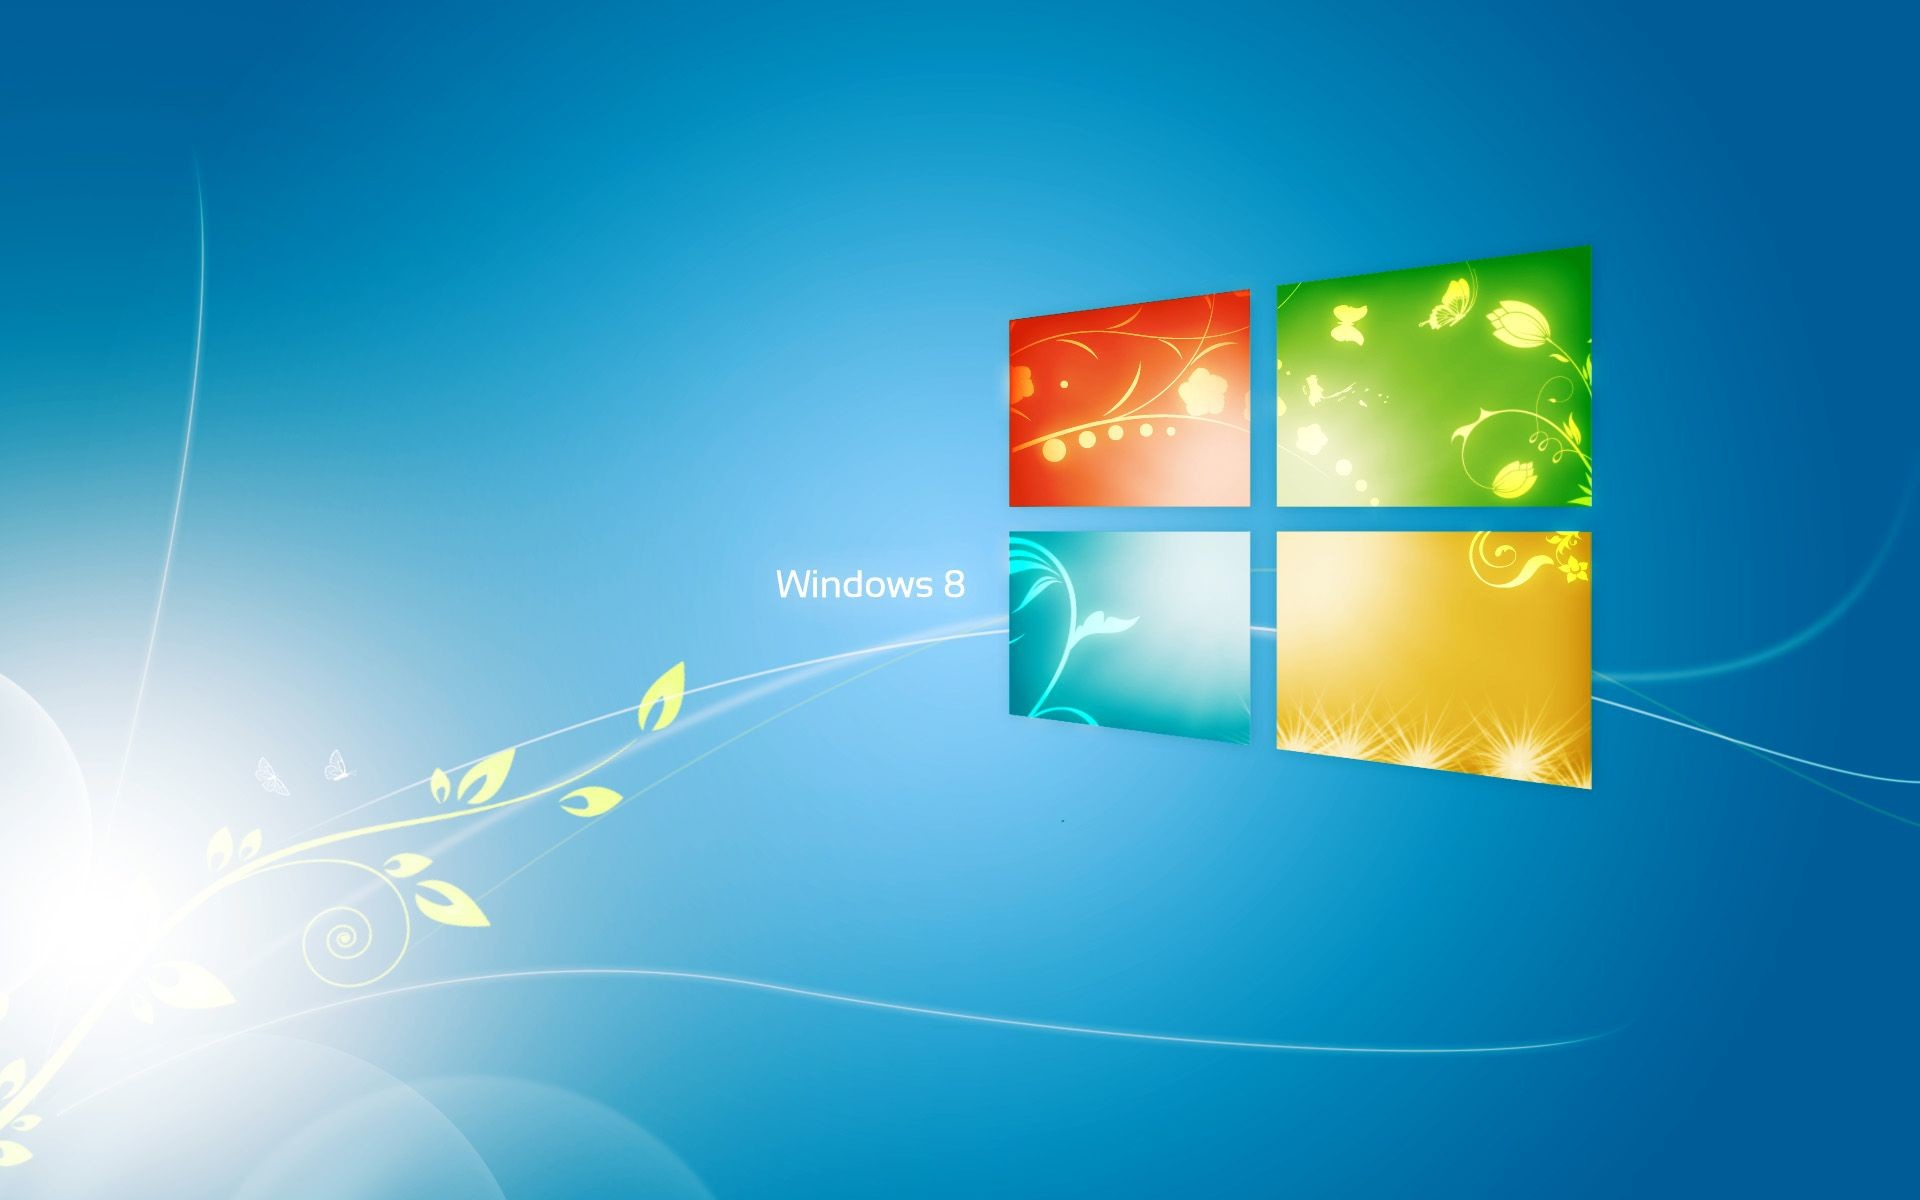 1920x1200 Hd wallpaper · Windows « Awesome Wallpapers